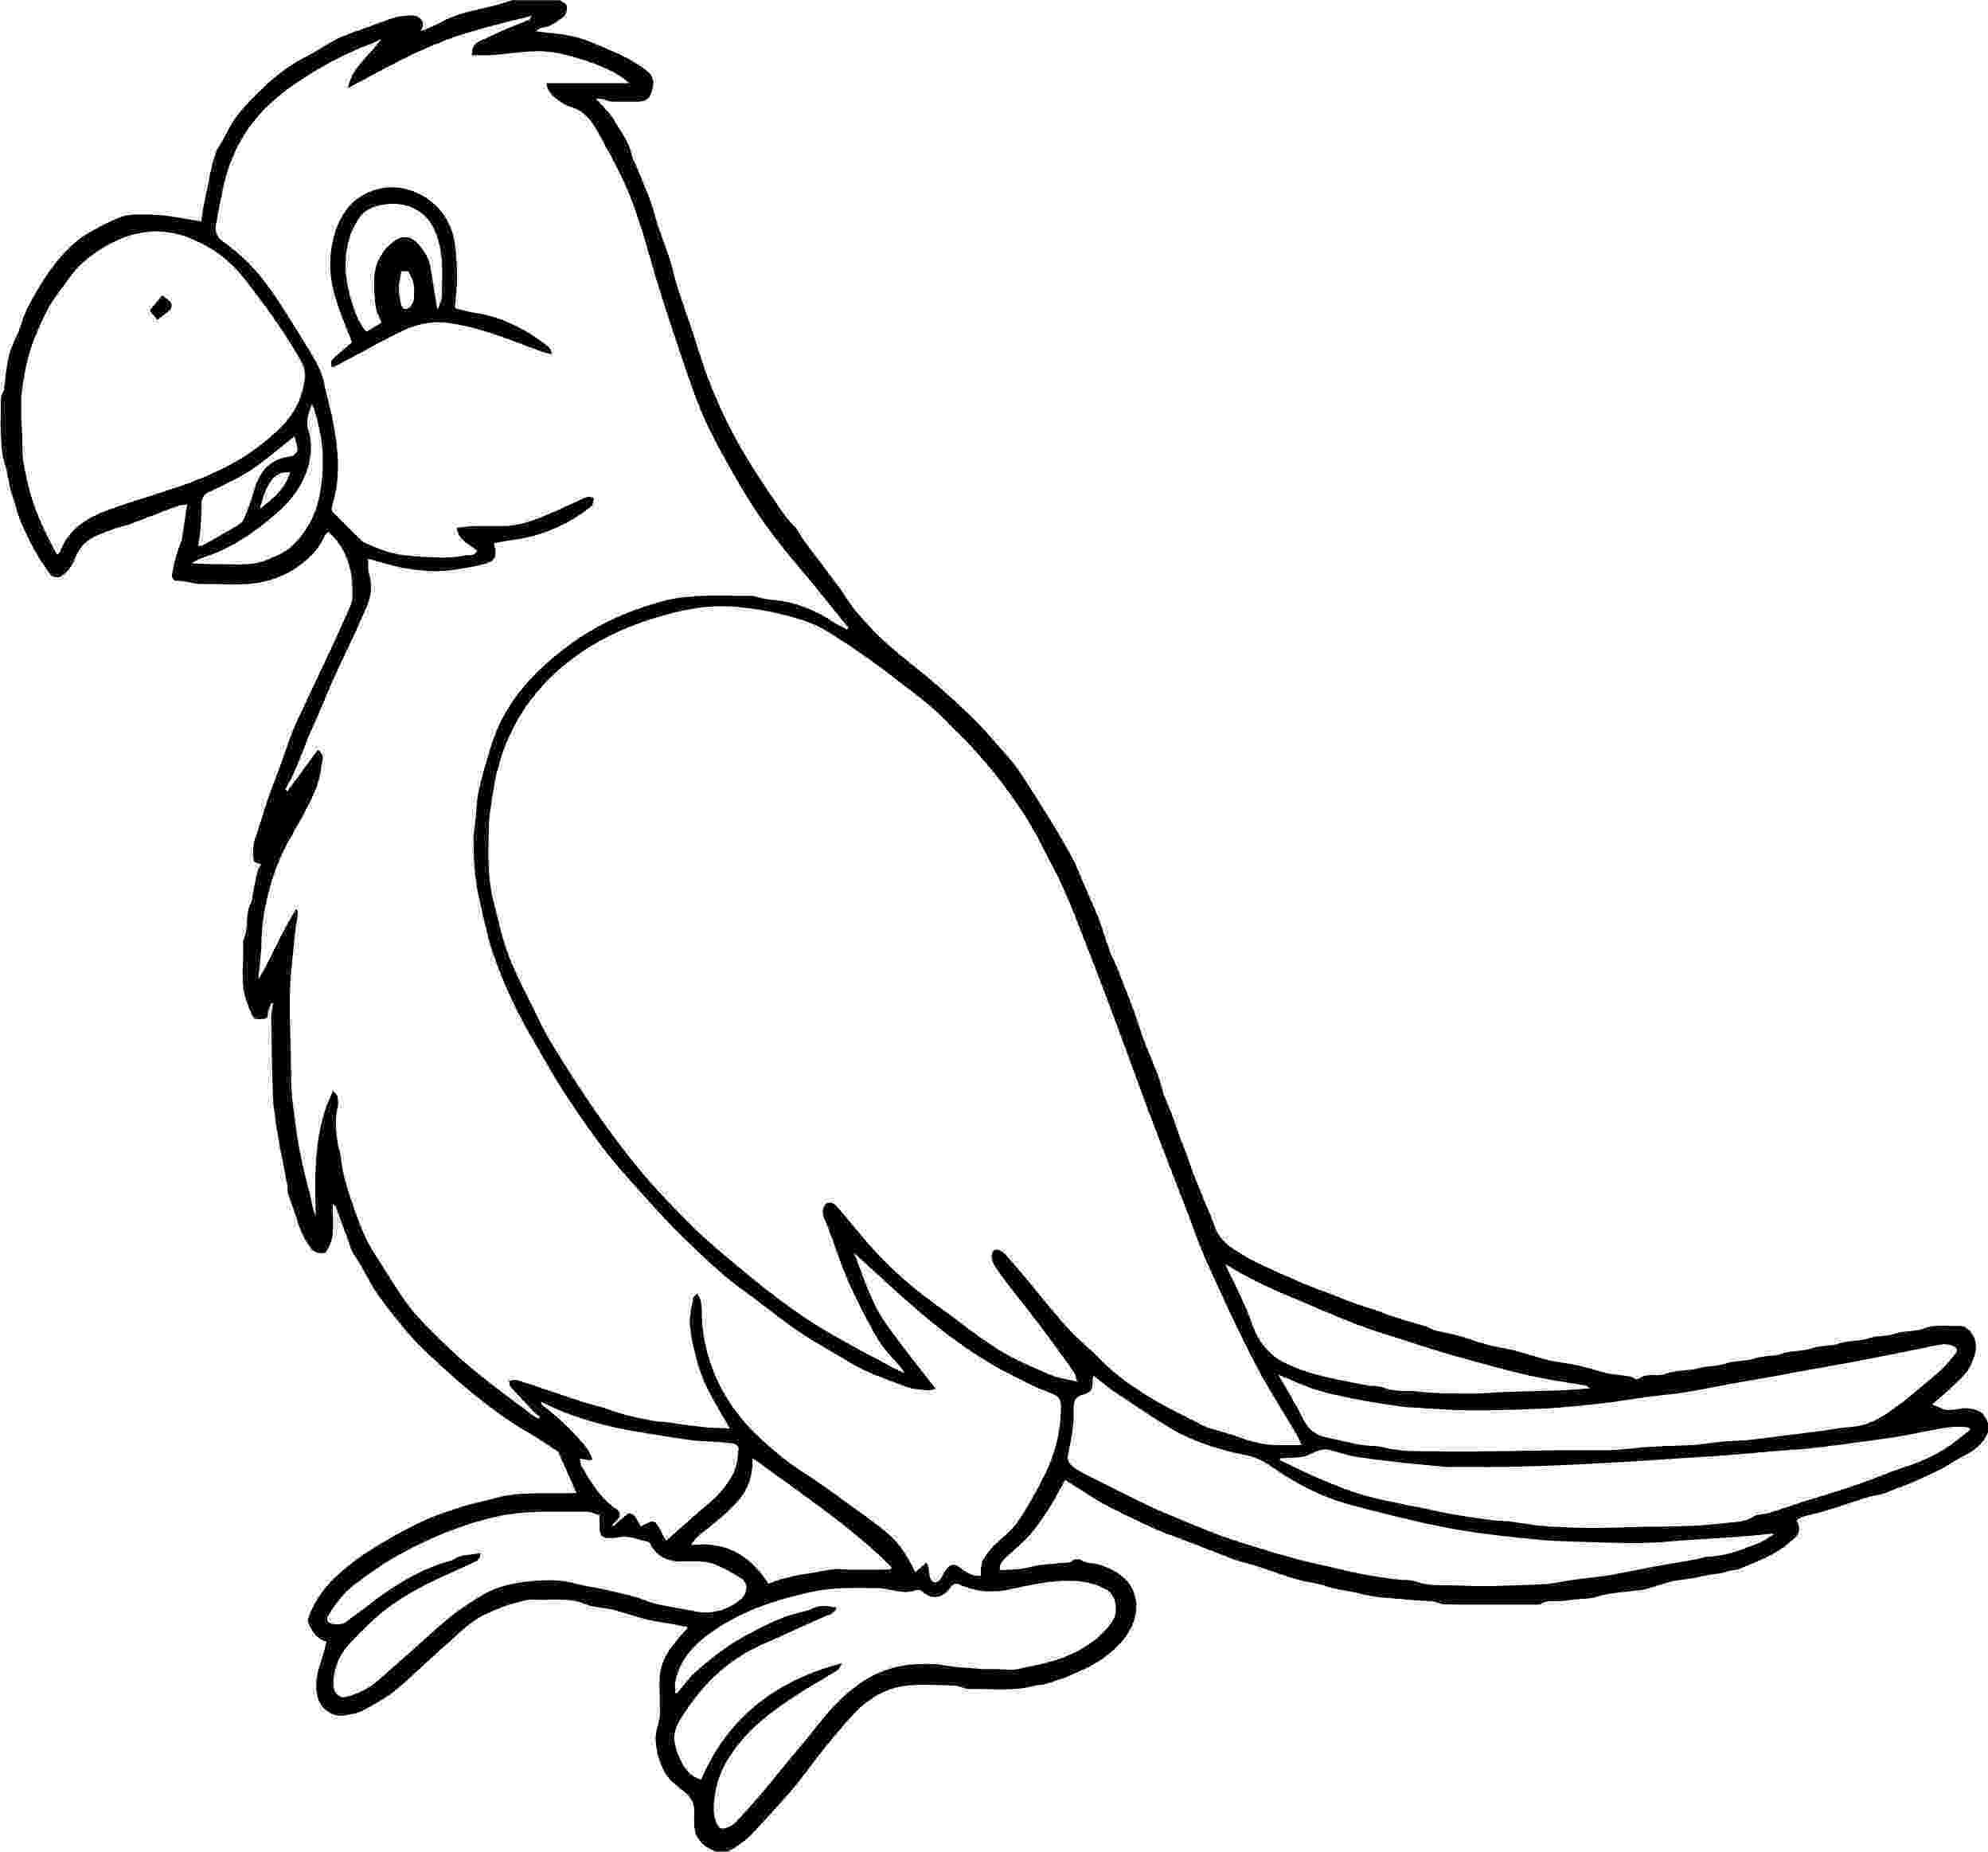 parrot pictures for kids to color free printable parrot coloring pages for kids parrot kids for color pictures to